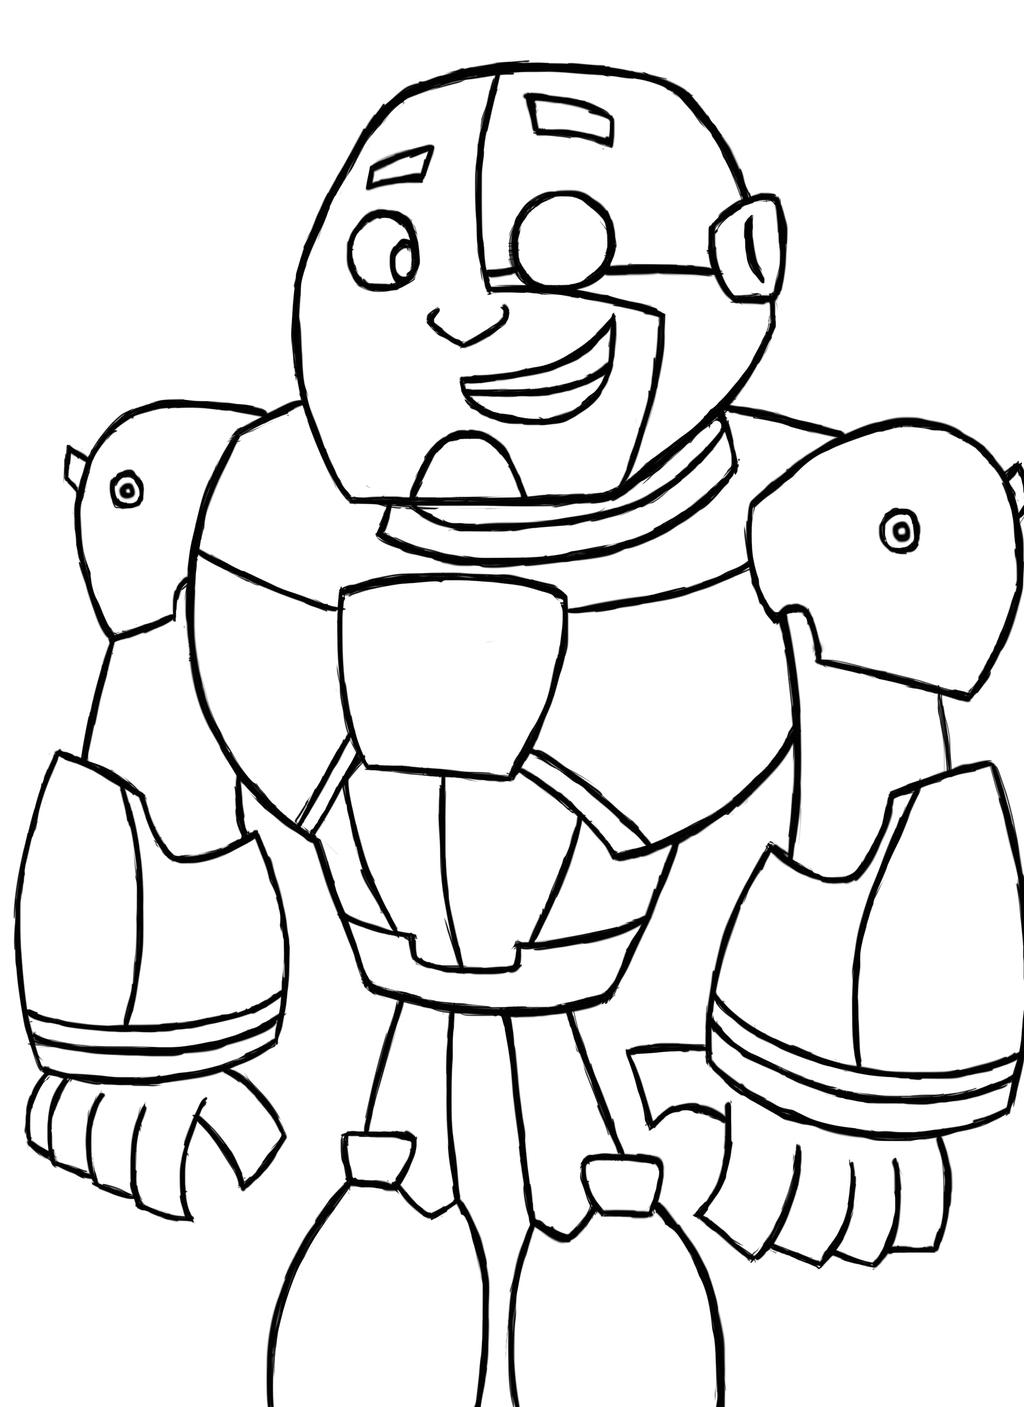 Teen titans go cyborg by juliangutierrez on deviantart for Teen titans coloring pages